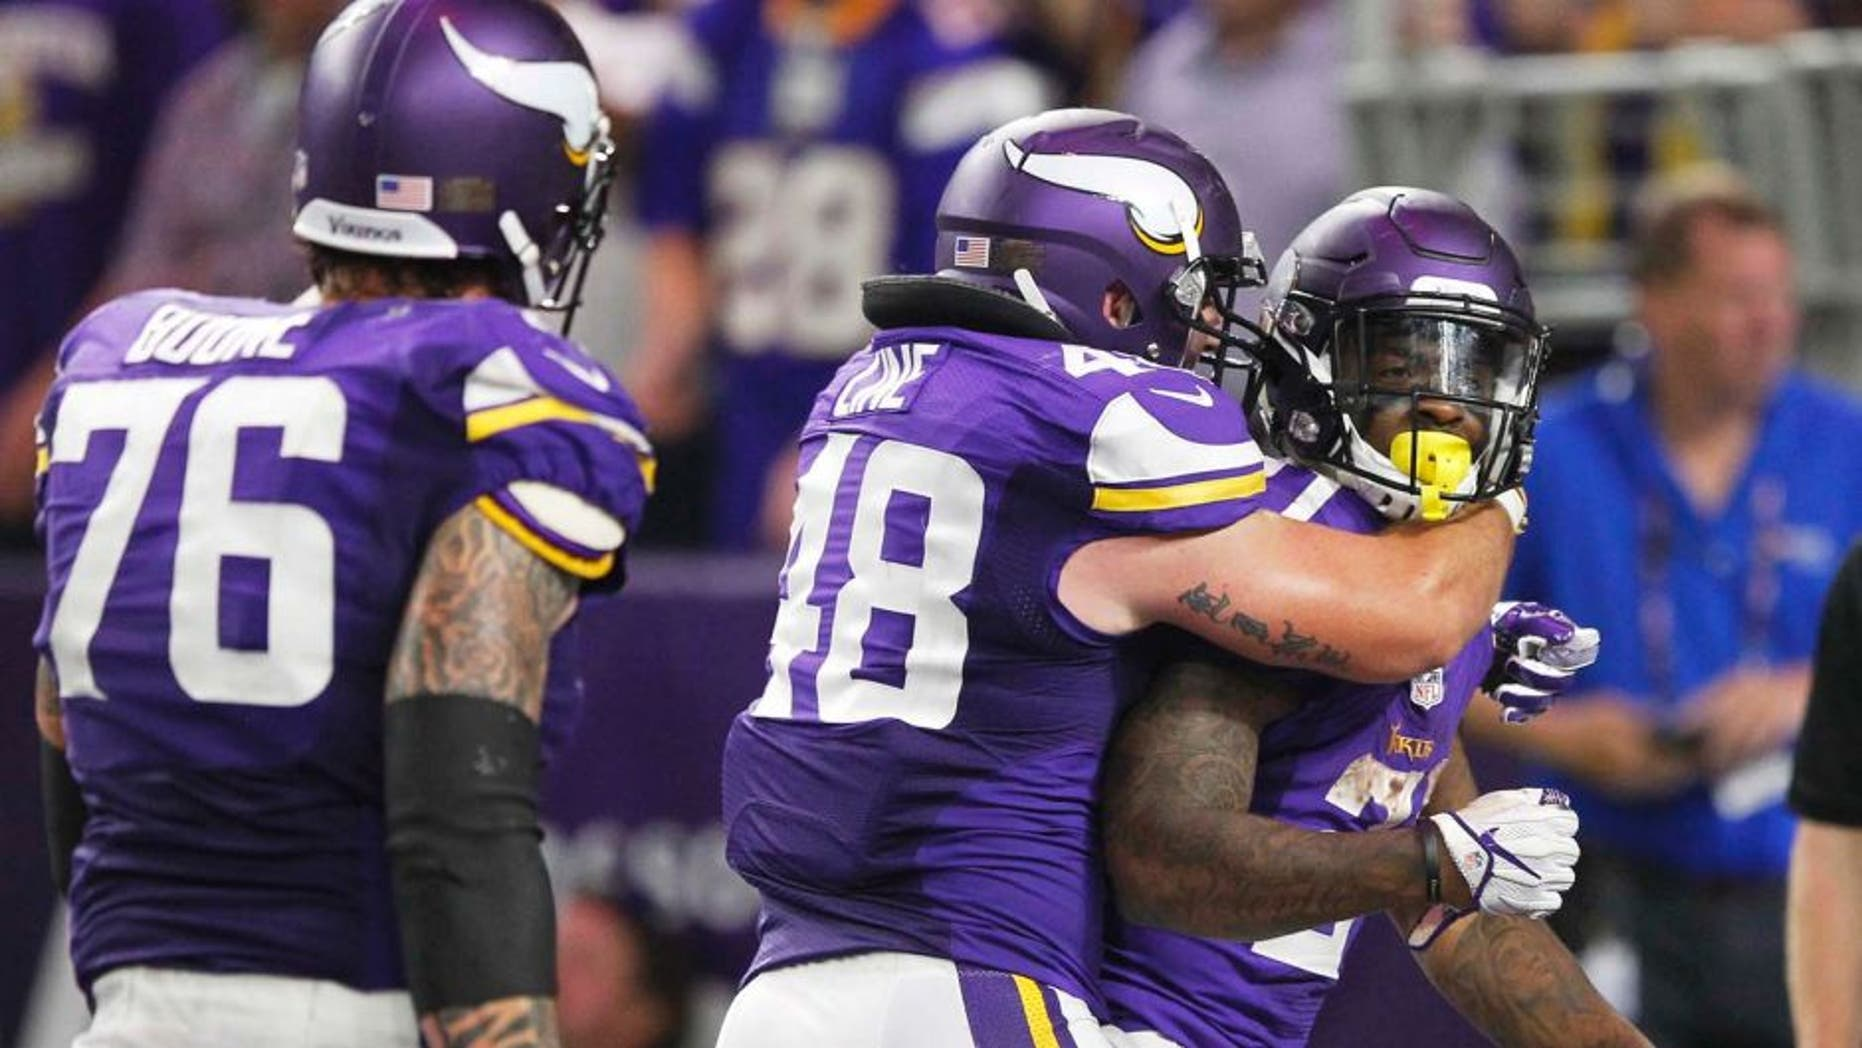 Minnesota Vikings running back Jerick McKinnon, right, celebrates with teammates Zach Line, center, and Alex Boone, left, after scoring on a 4-yard touchdown run during the second half of an NFL football game against the New York Giants, Monday, Oct. 3, 2016, in Minneapolis. (AP Photo/Andy Clayton-King)